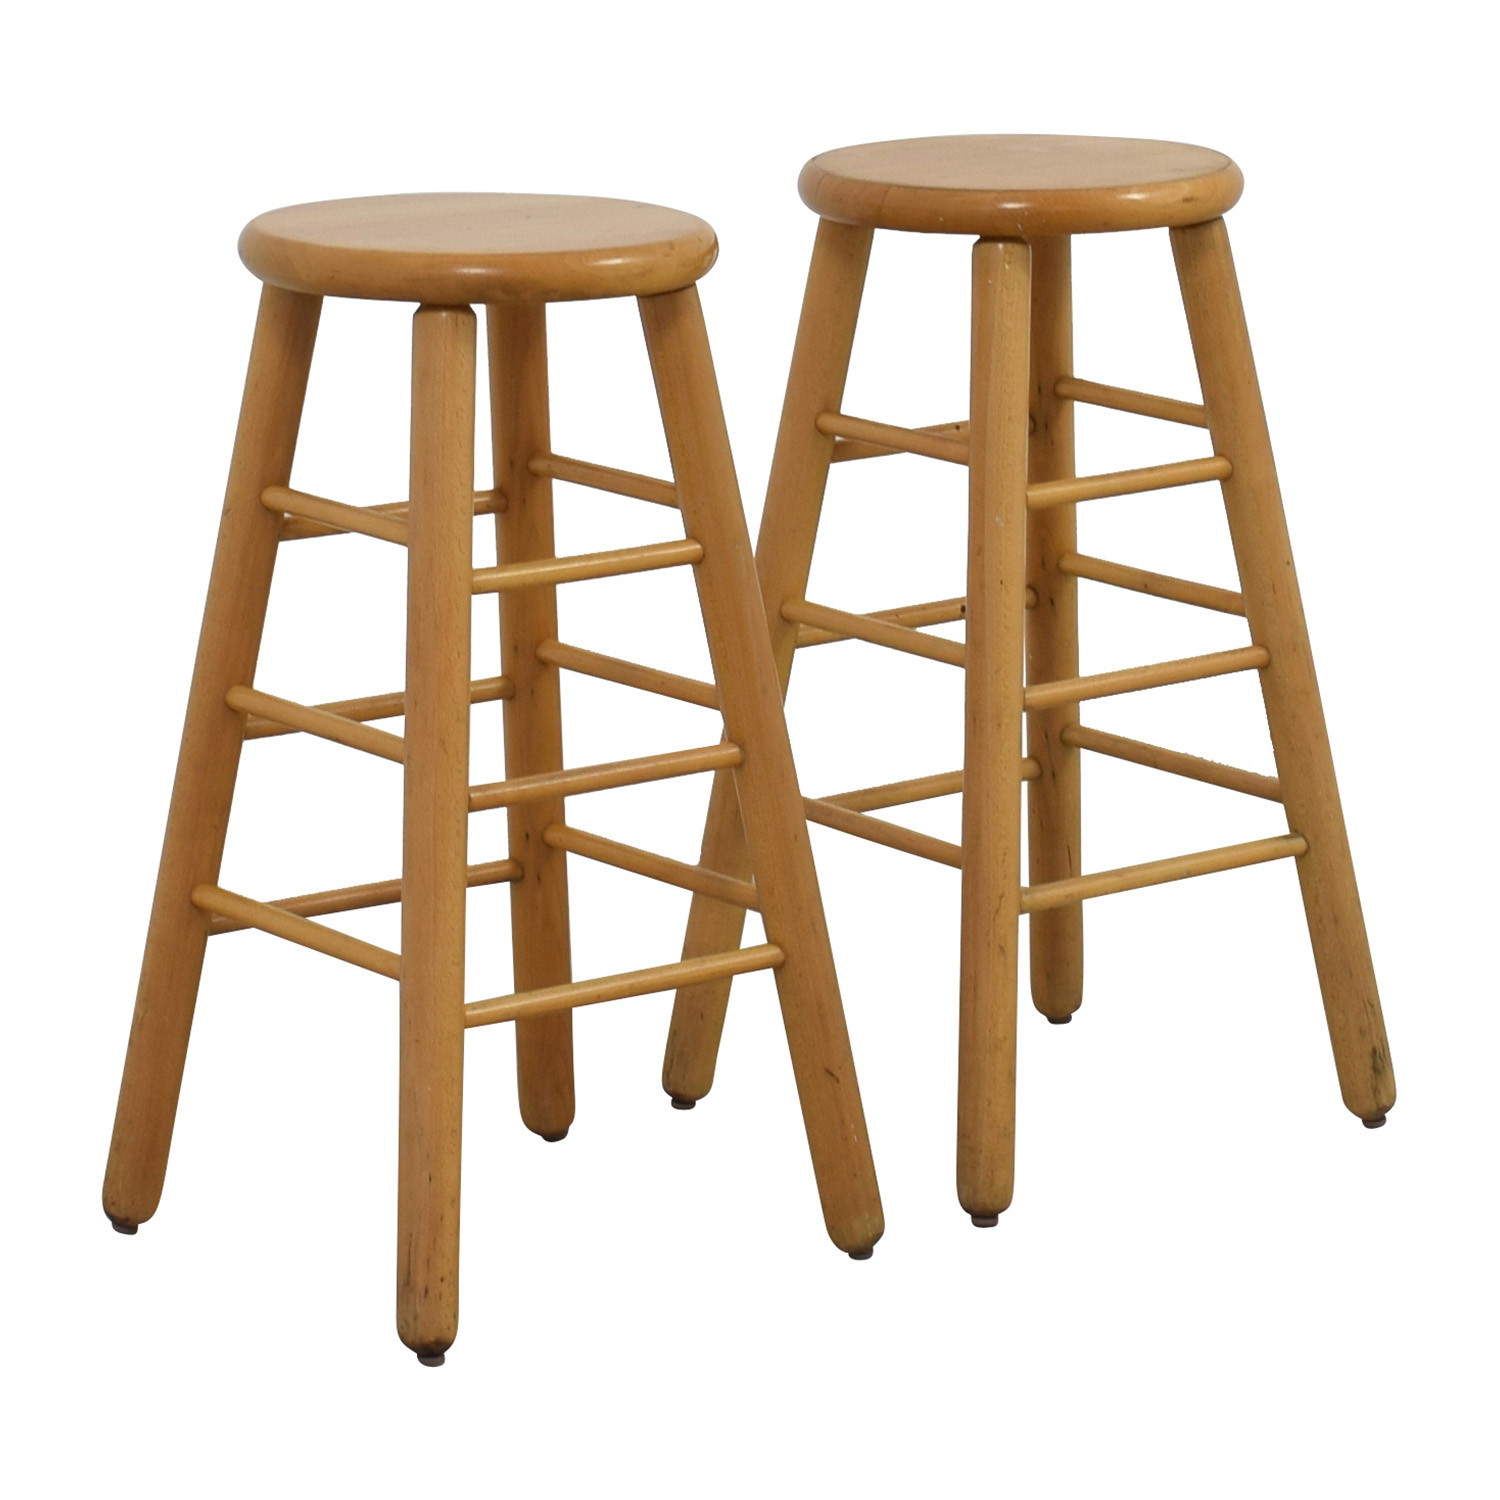 Second Hand Wood Sala Set 83 Off Wood Bar Stools Chairs